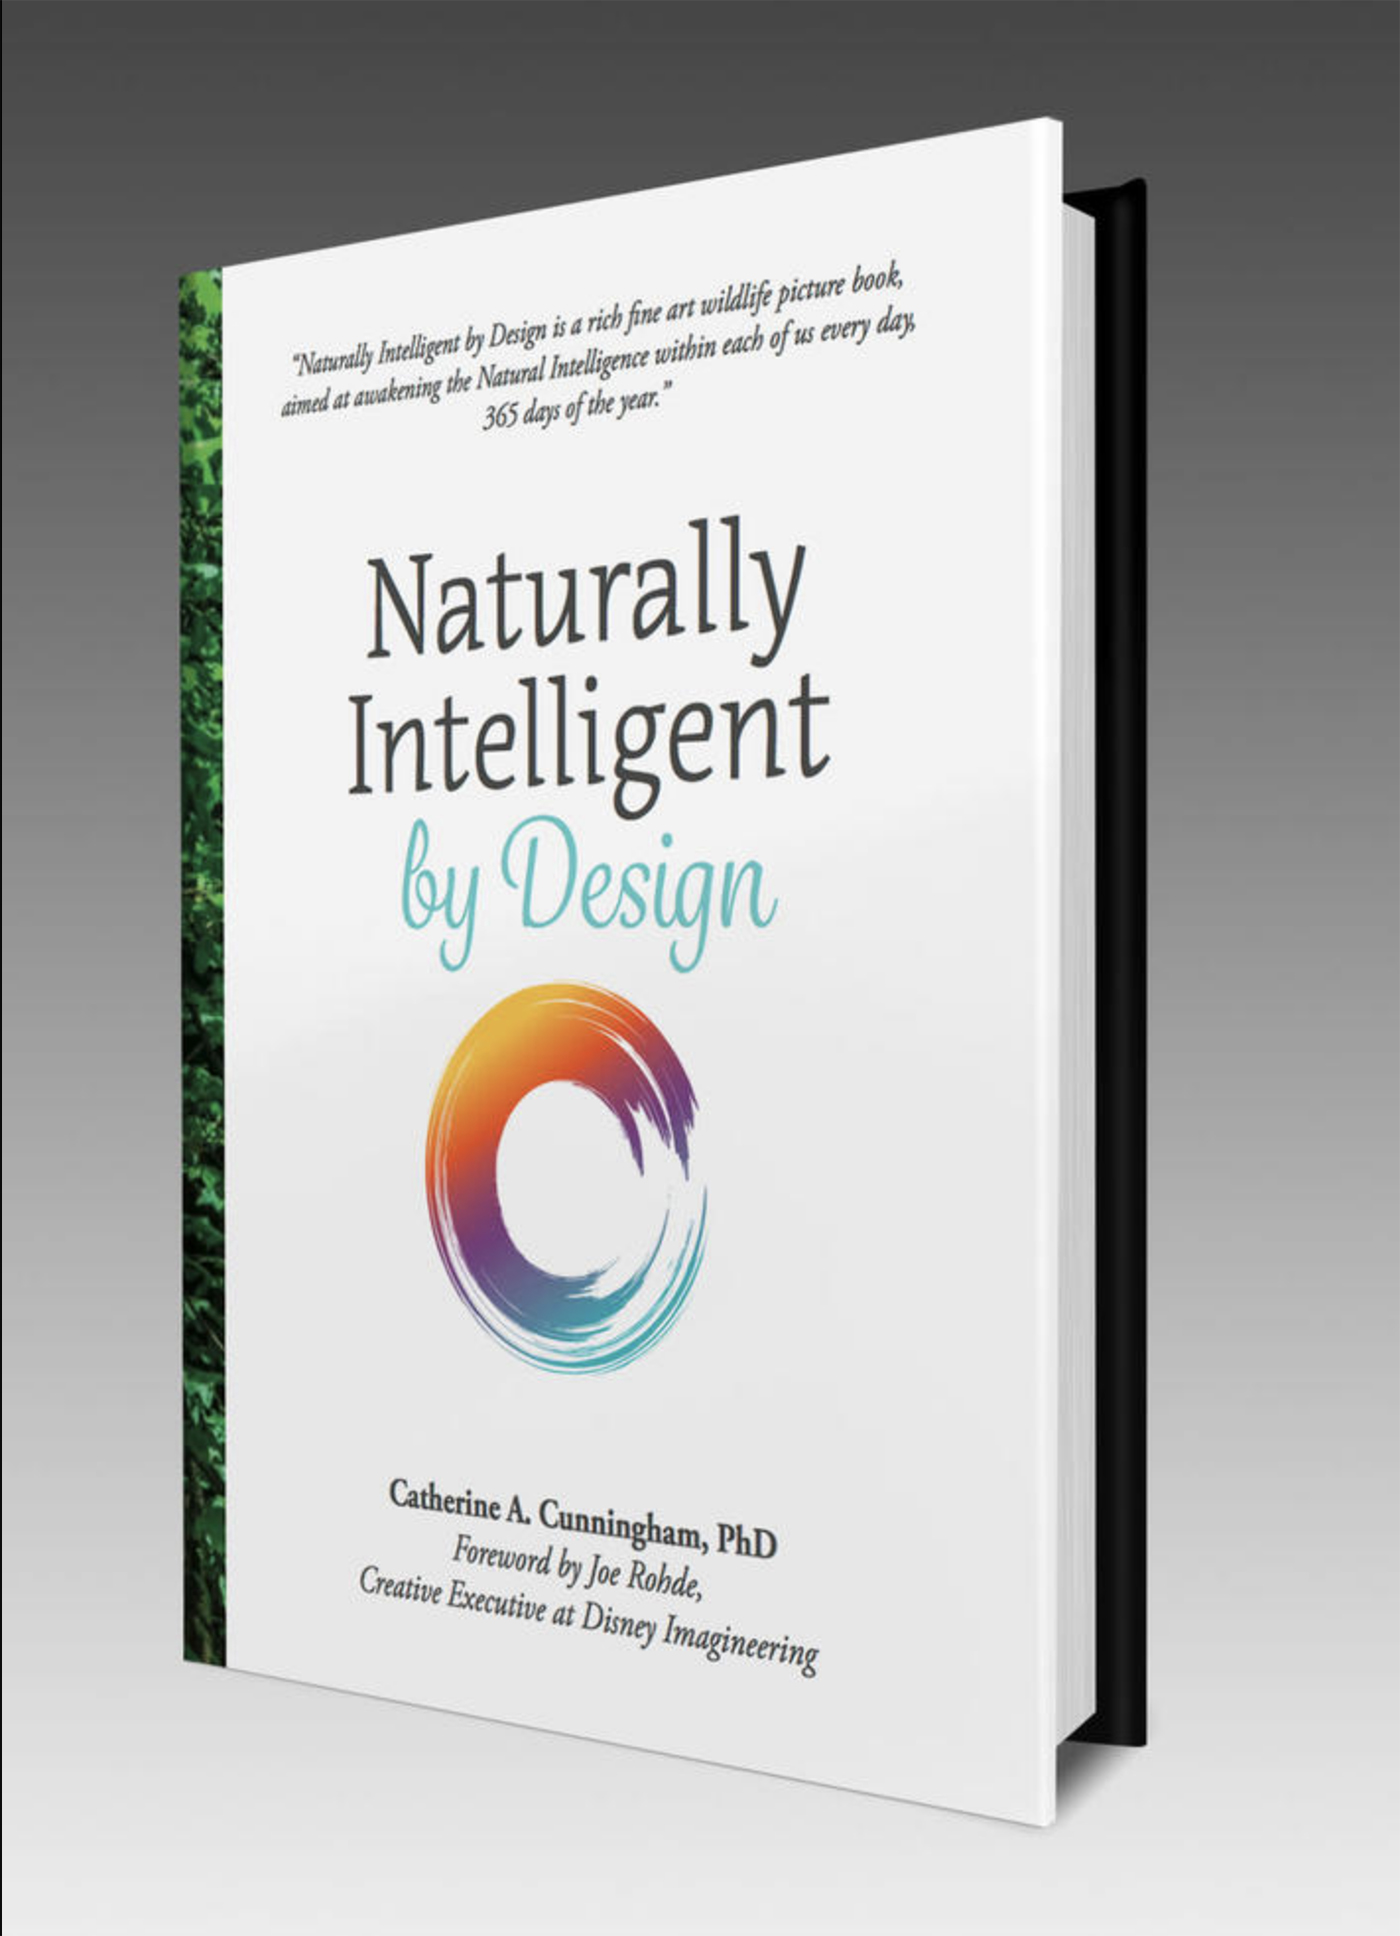 Natural Intelligence by Design